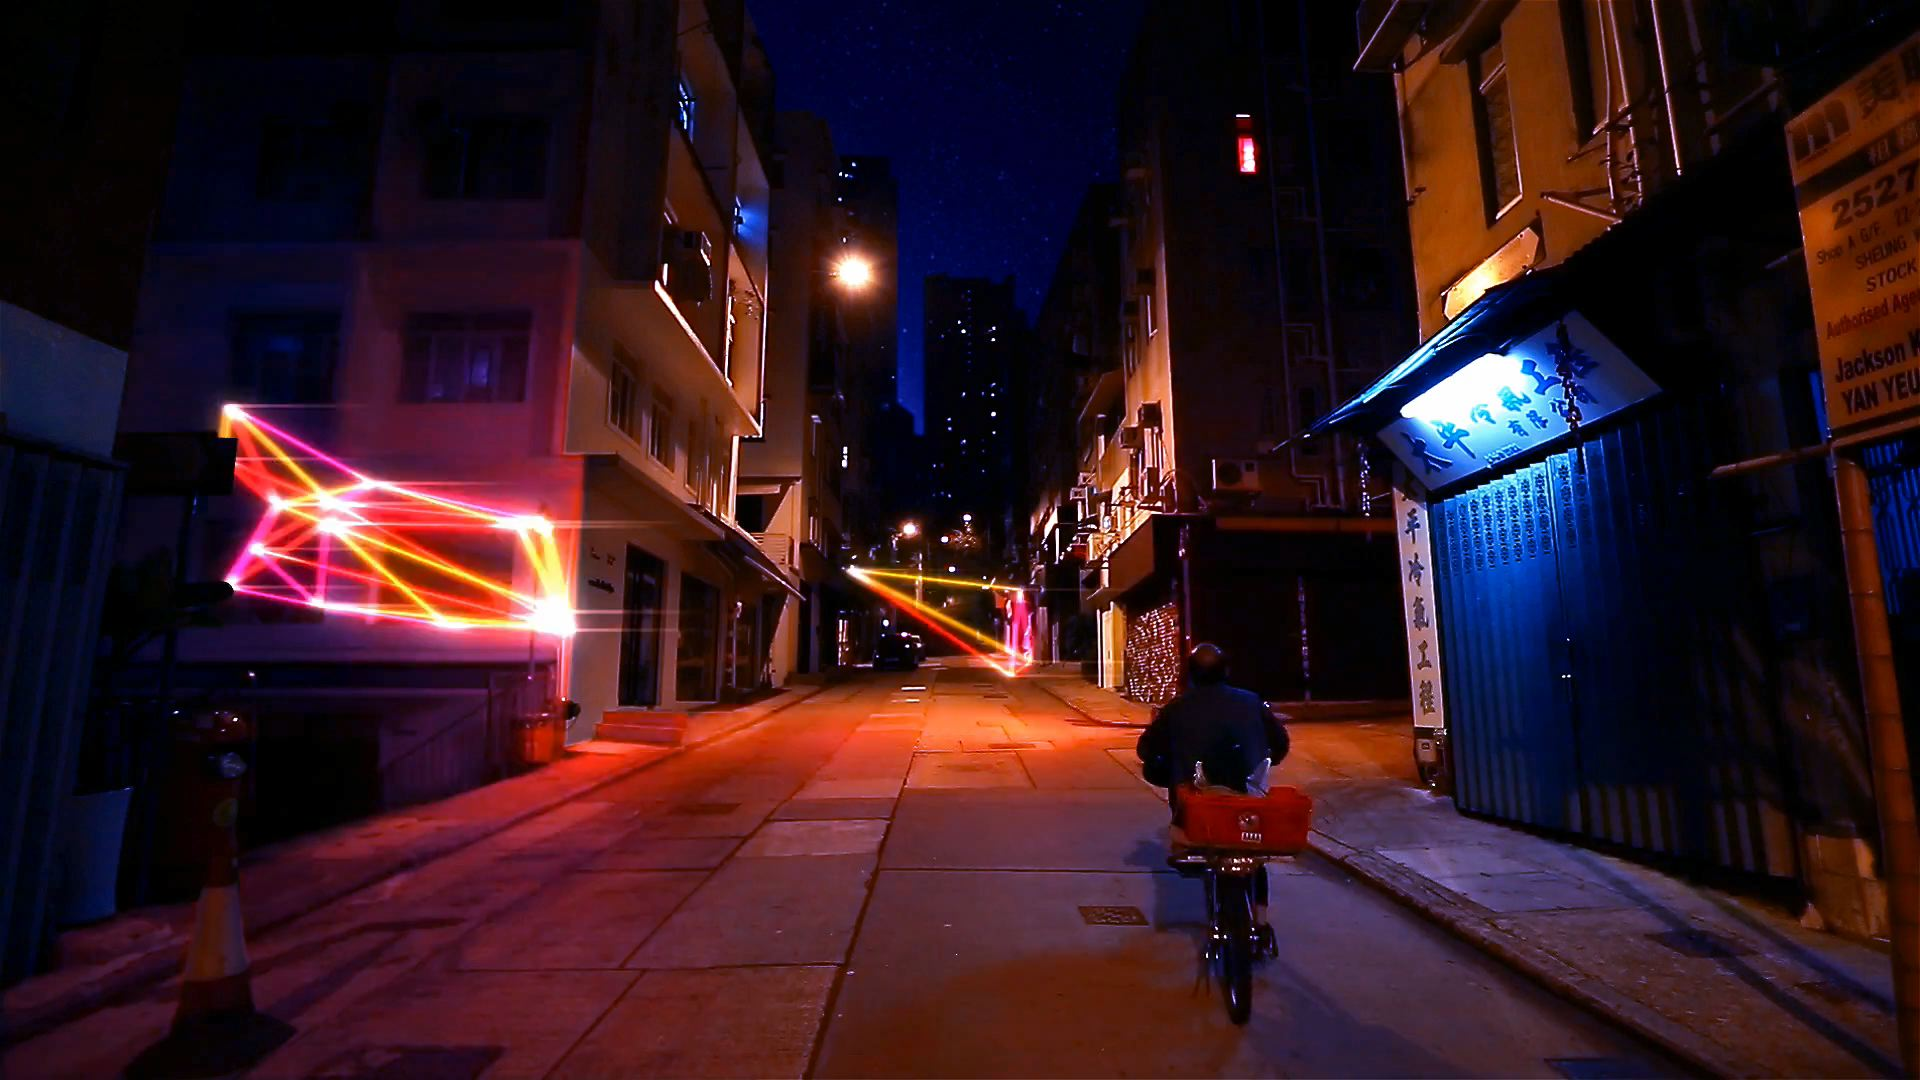 A man rides his bike through a Hong Kong street, animated shapes whiz by.